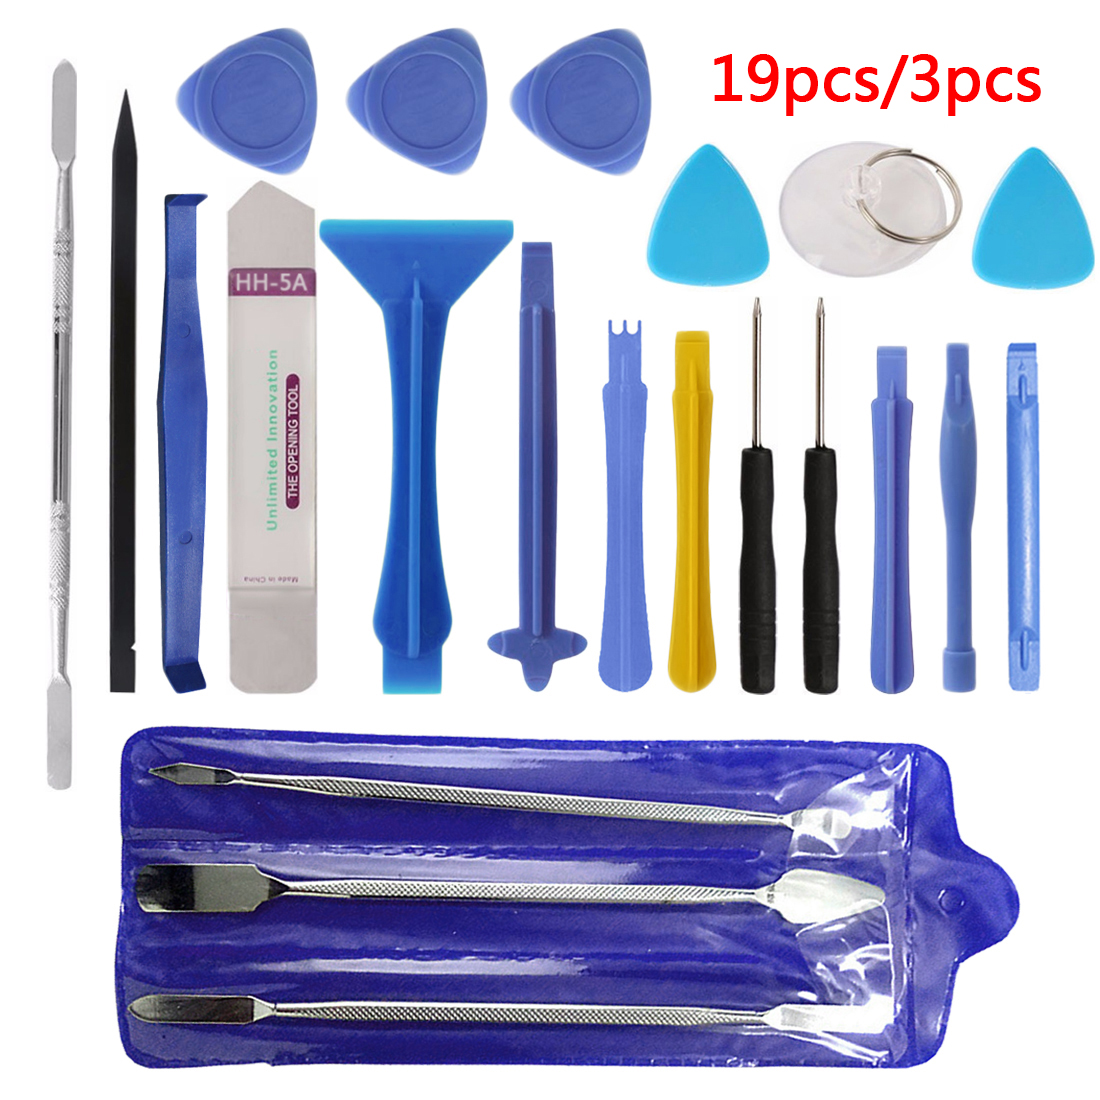 Hand Tool Set 3pcs/19pcs Repair Tool Kit Opening Tool Metal Pry Bar Smartphone Screen Disassemble Tools for iPhone Tablet PC 3pcs set ferramentas smartphone tools metal spudger mobile phone laptop tablet repairing opening tools